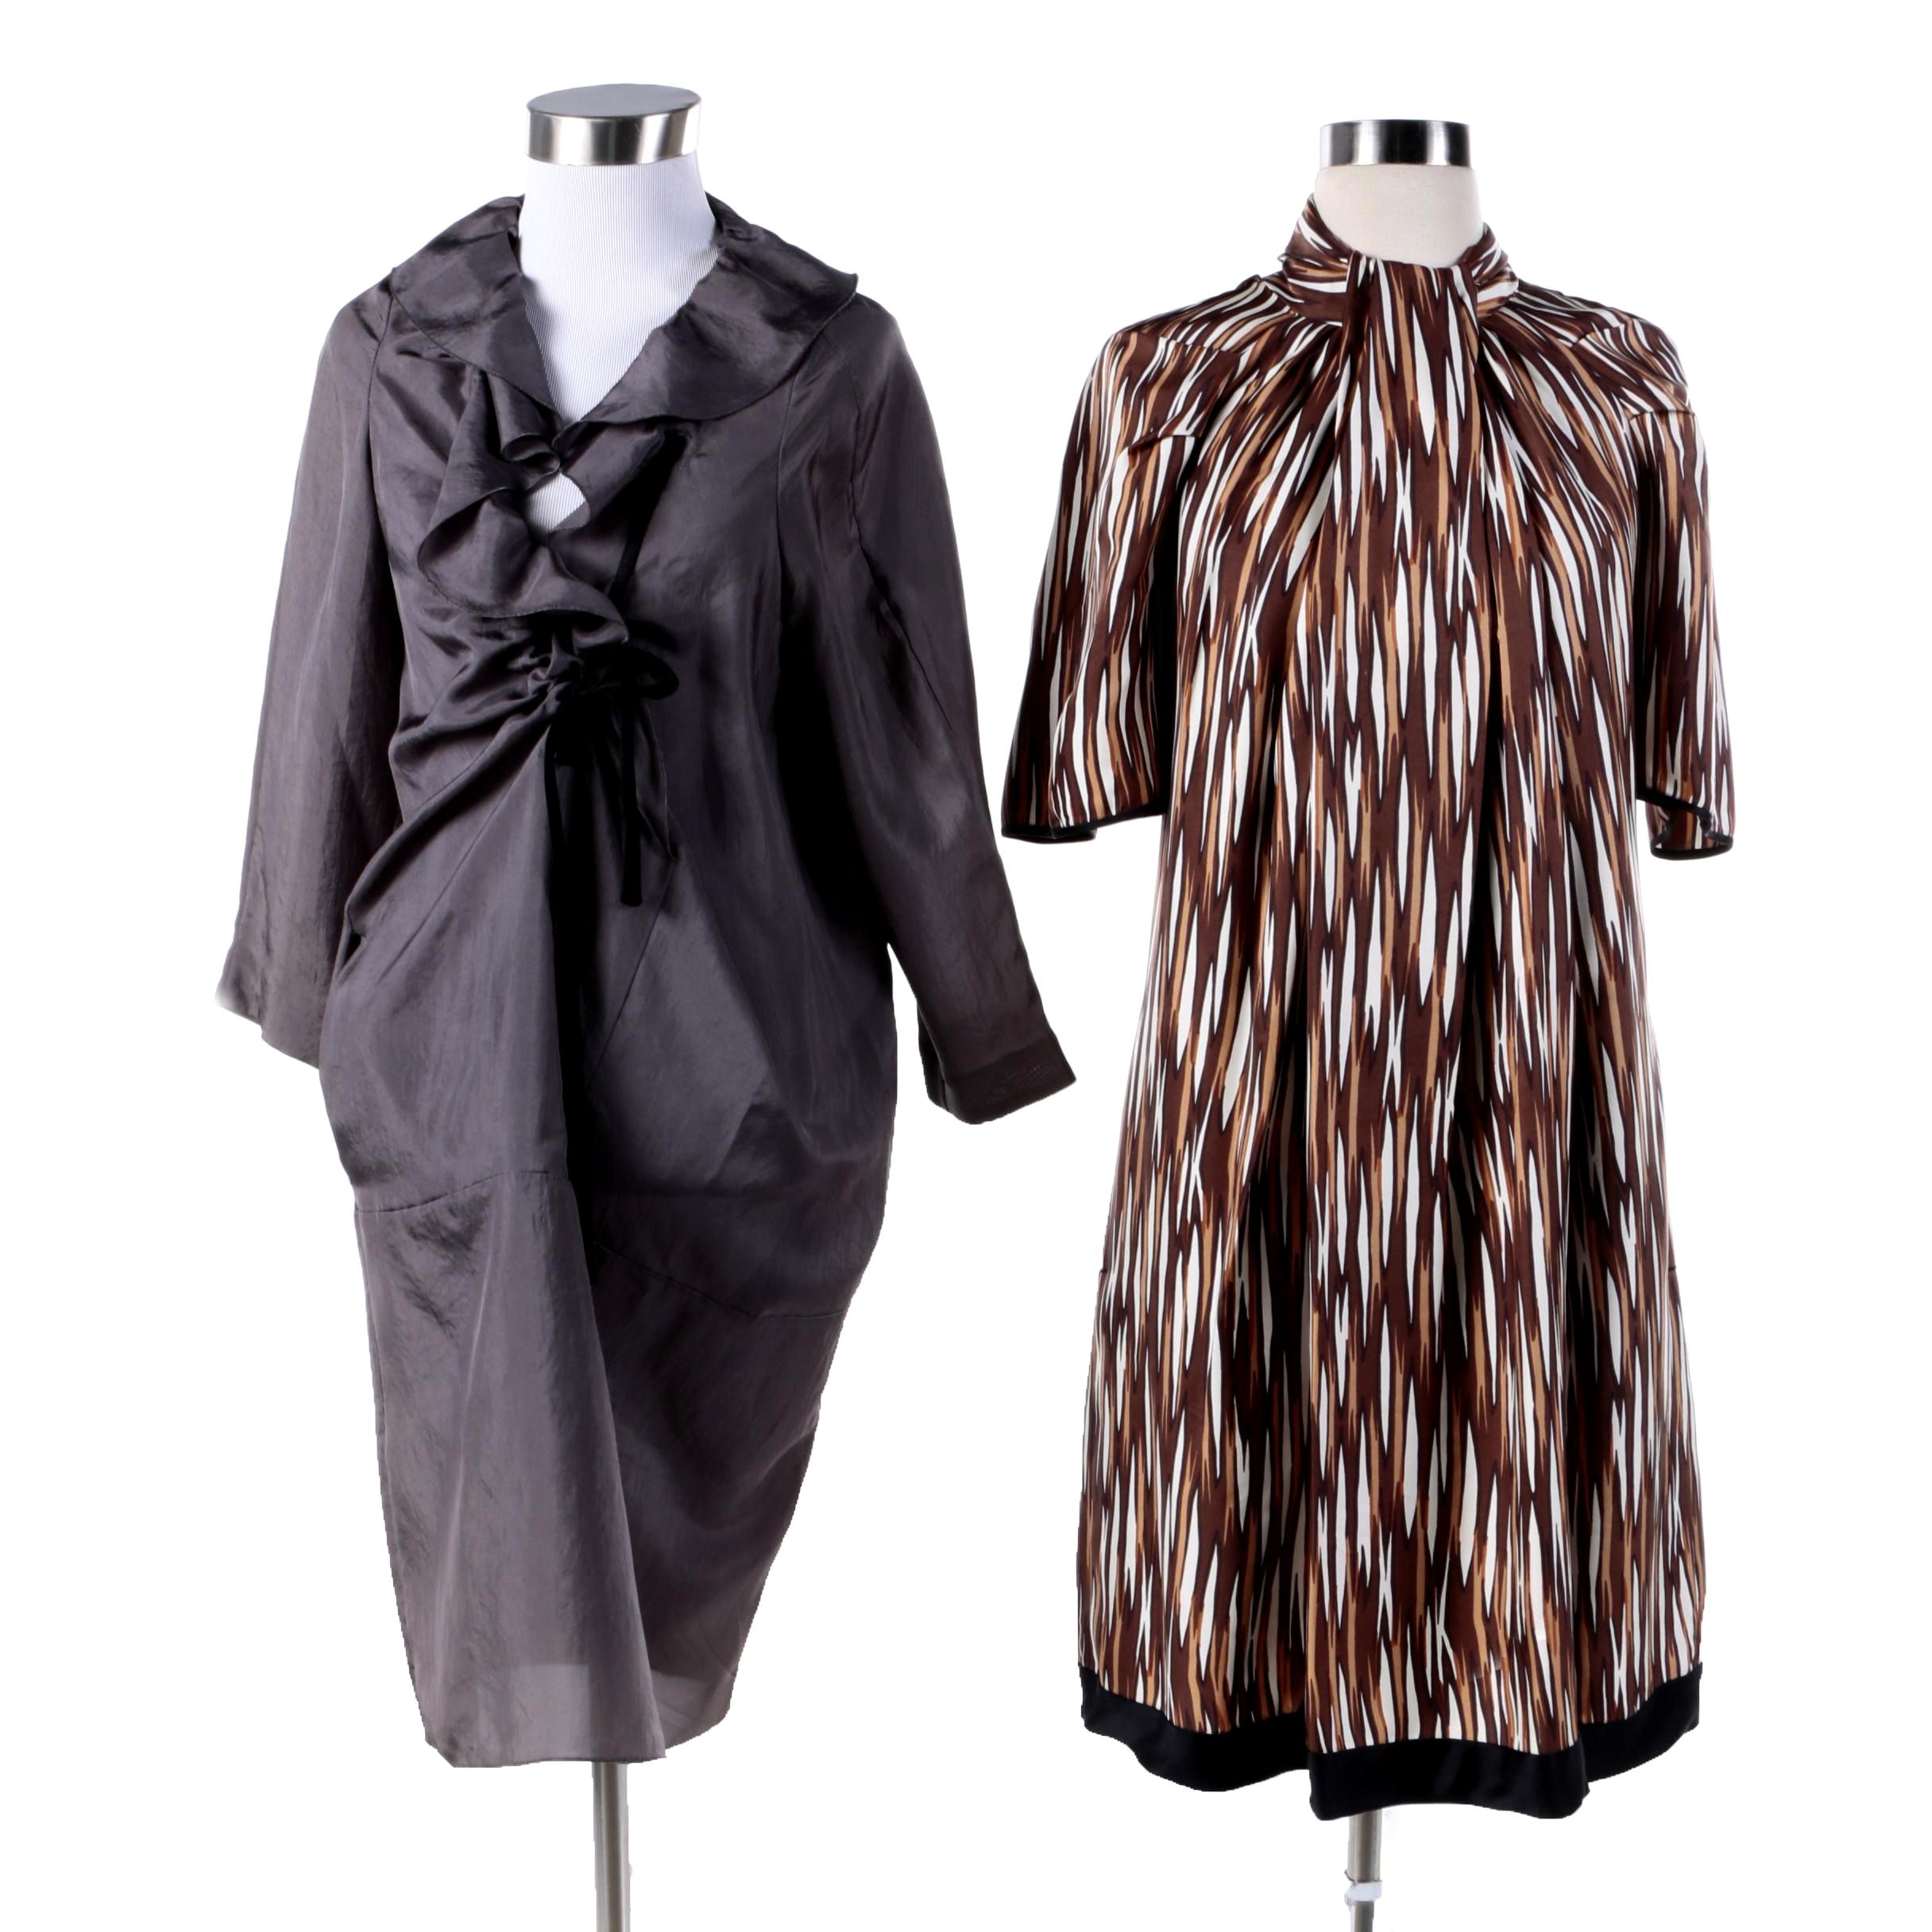 Marc Jacobs Print Dress and Marni Grey Dress